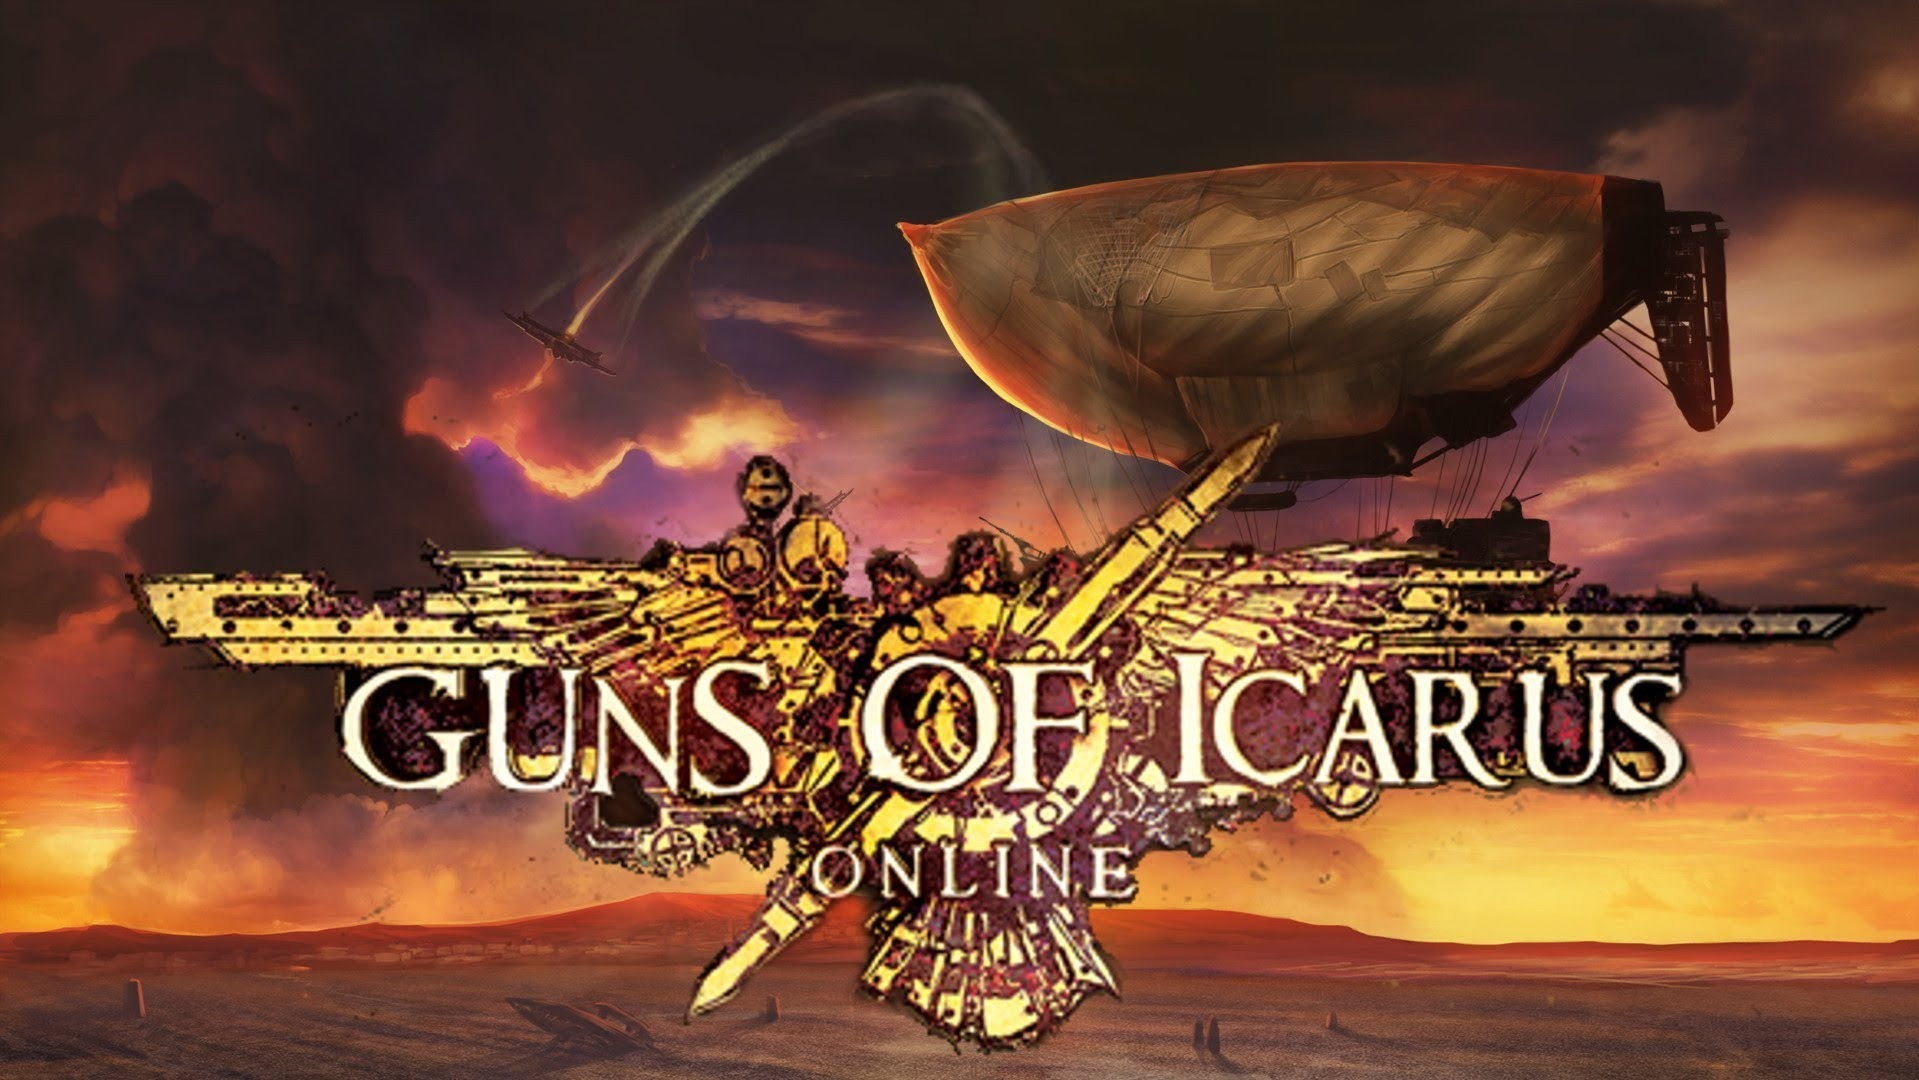 Guns of Icarus Online is free for the next 21 hours